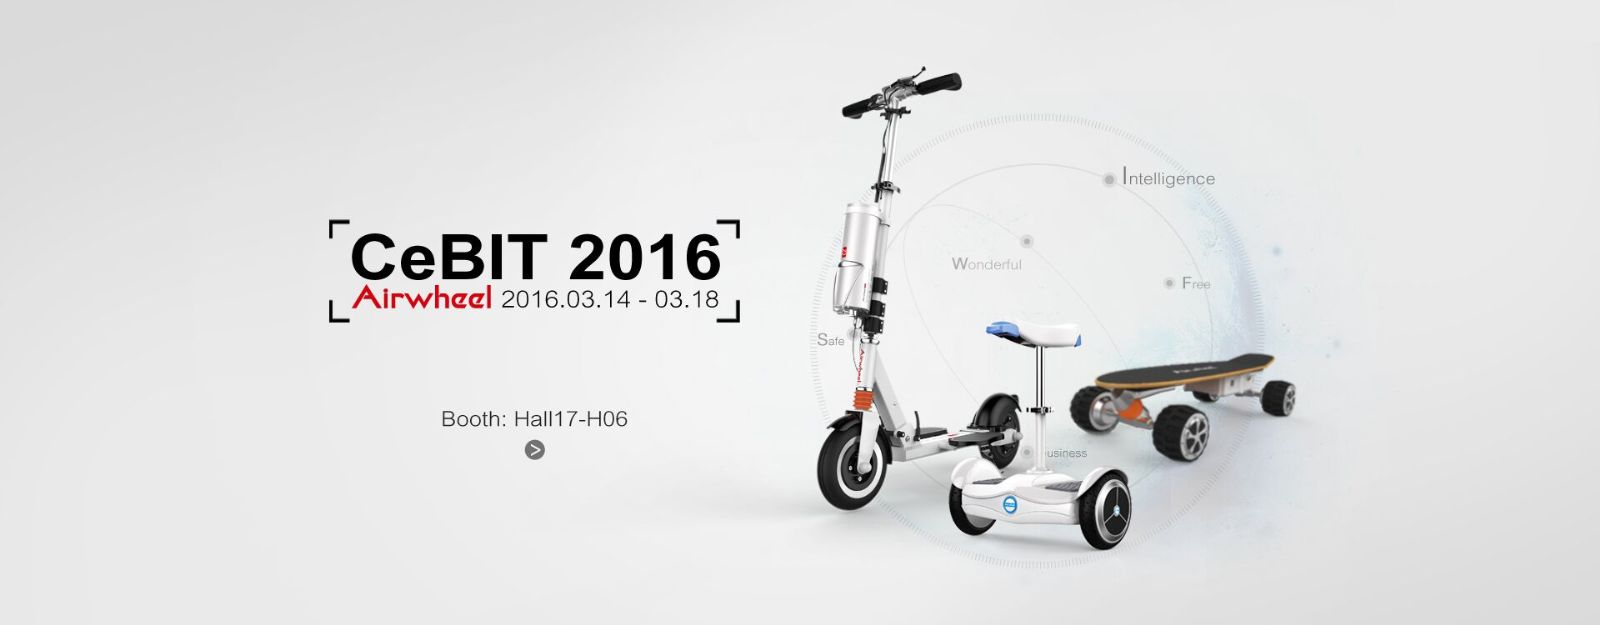 Airwheel in CeBIT